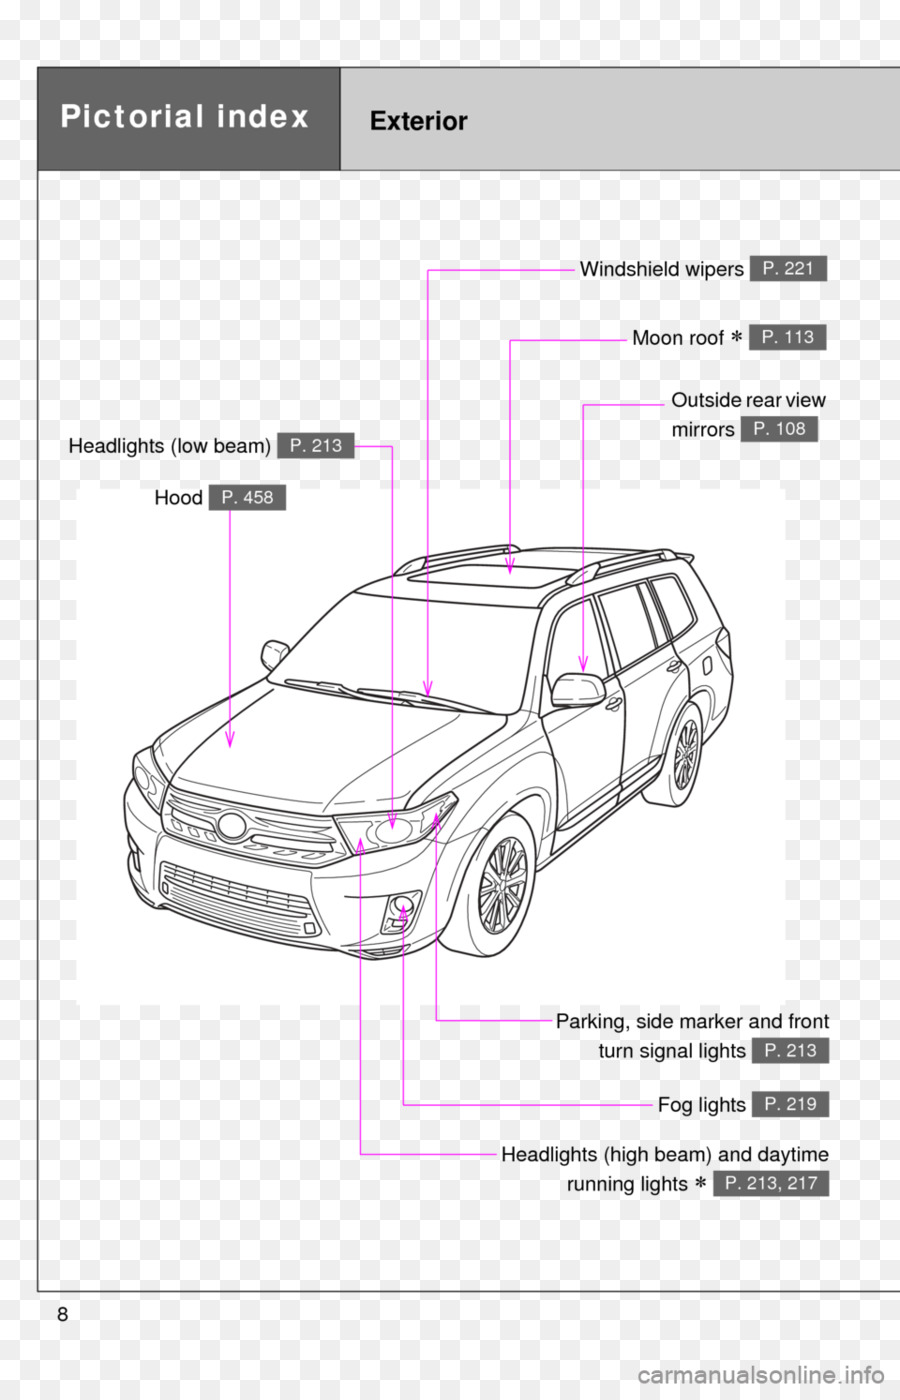 toyota, car, wiring diagram, motor vehicle png